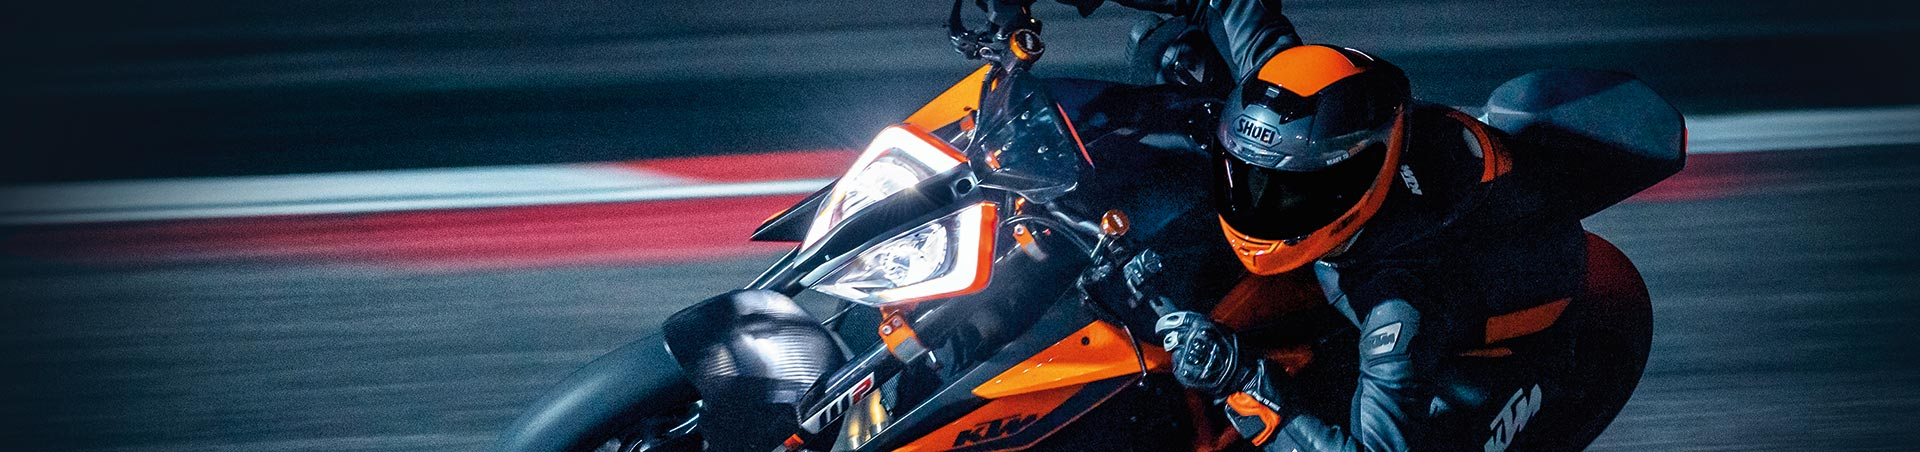 Titelbild-KTM-1290-SUPER-DUKE-R-2020_31-05-2020_add67